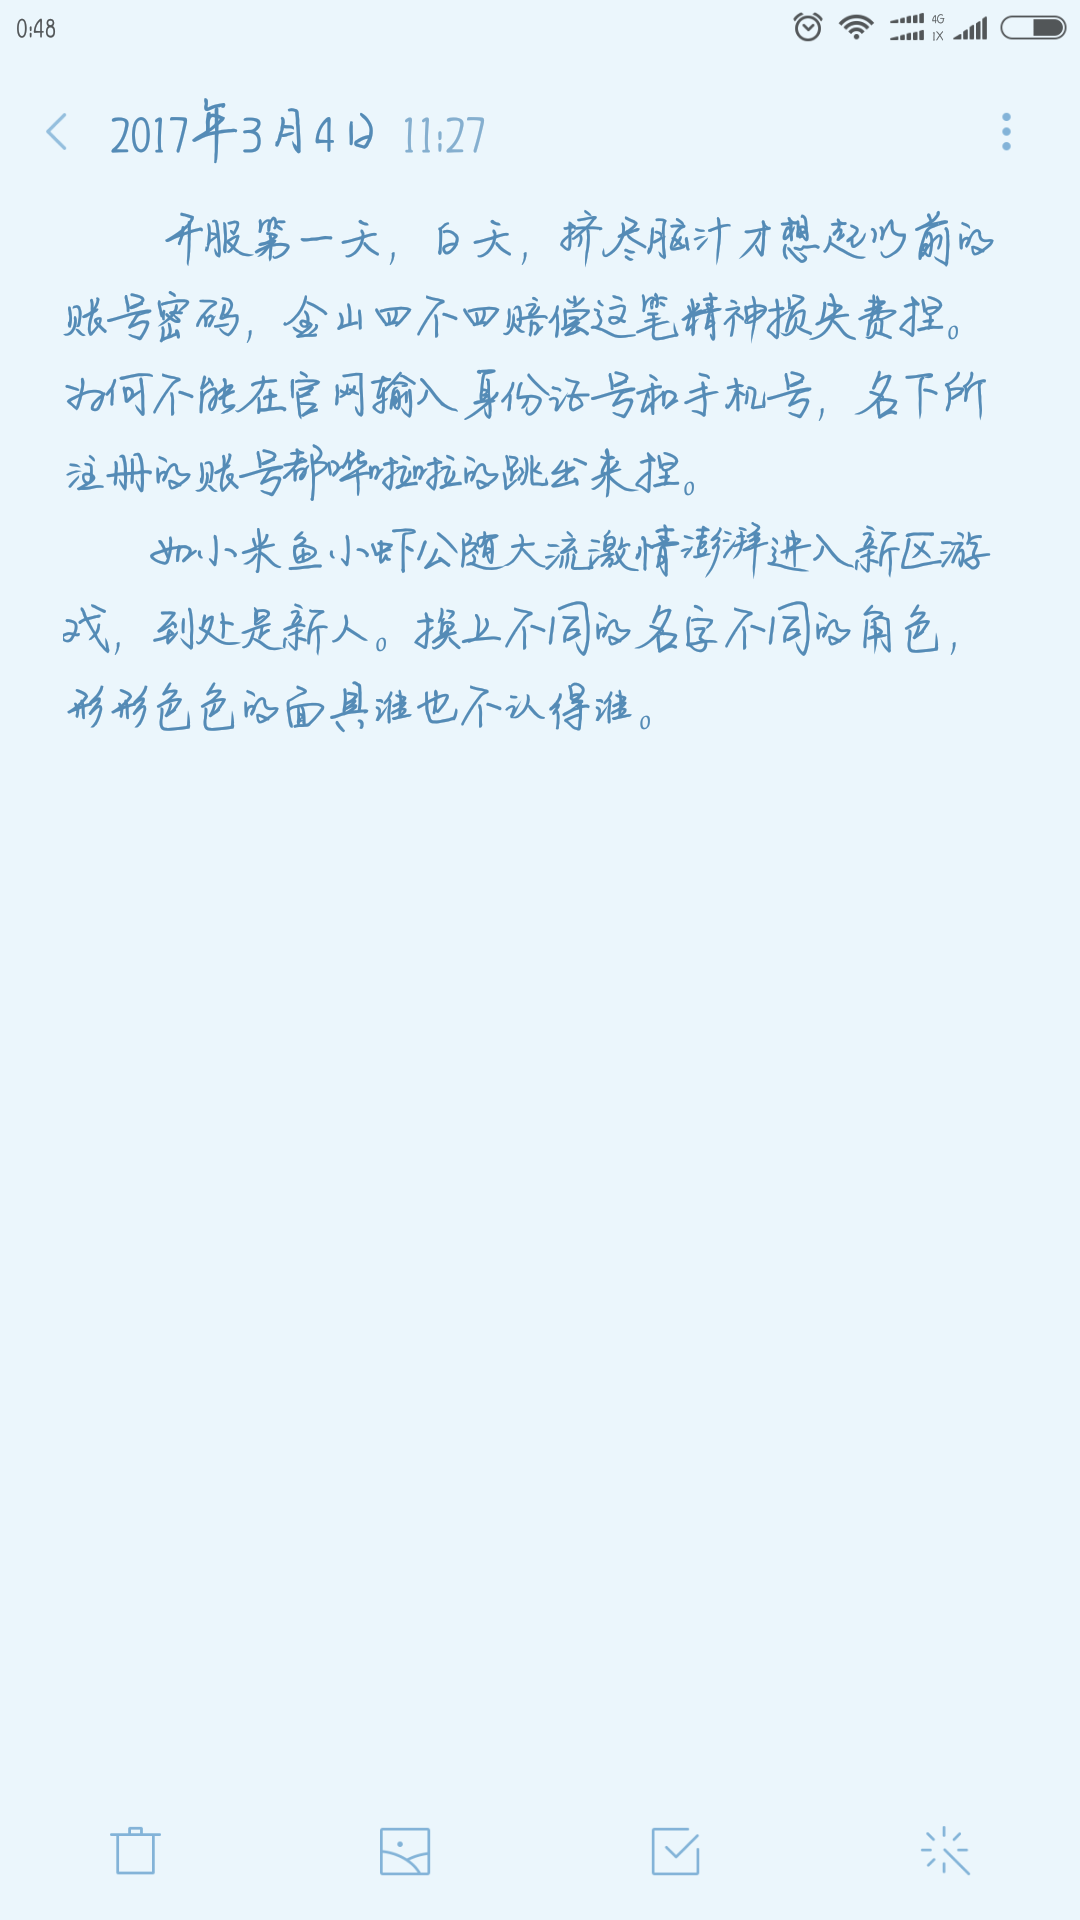 Screenshot_2017-03-05-00-48-10-617_com.miui.notes.png